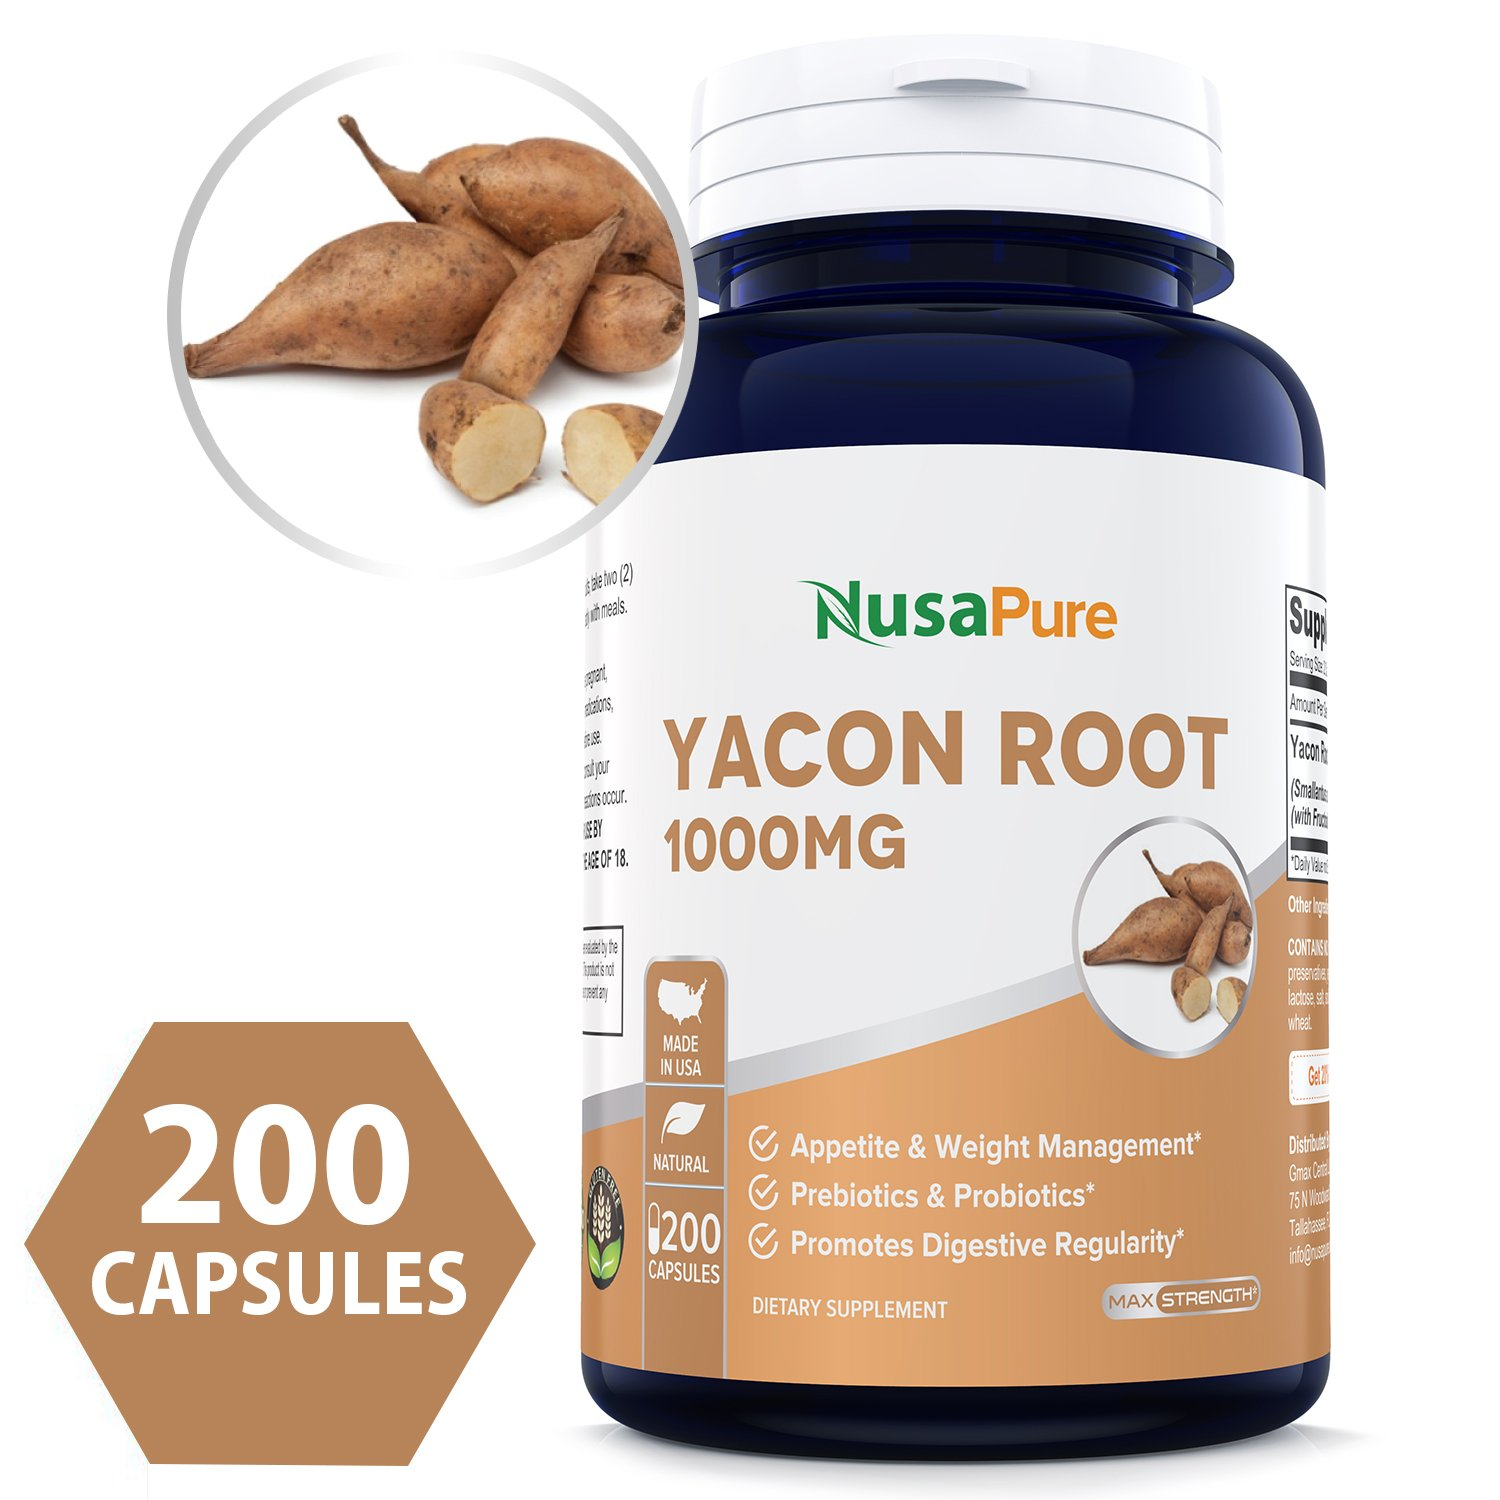 Yacon Root Extract 1000mg Serving 200 Capsules (Non-GMO & Gluten Free) - Raw Natural Prebiotic & Probiotic, Rich in FOS - Healthy Digestion & Weight Loss by NusaPure